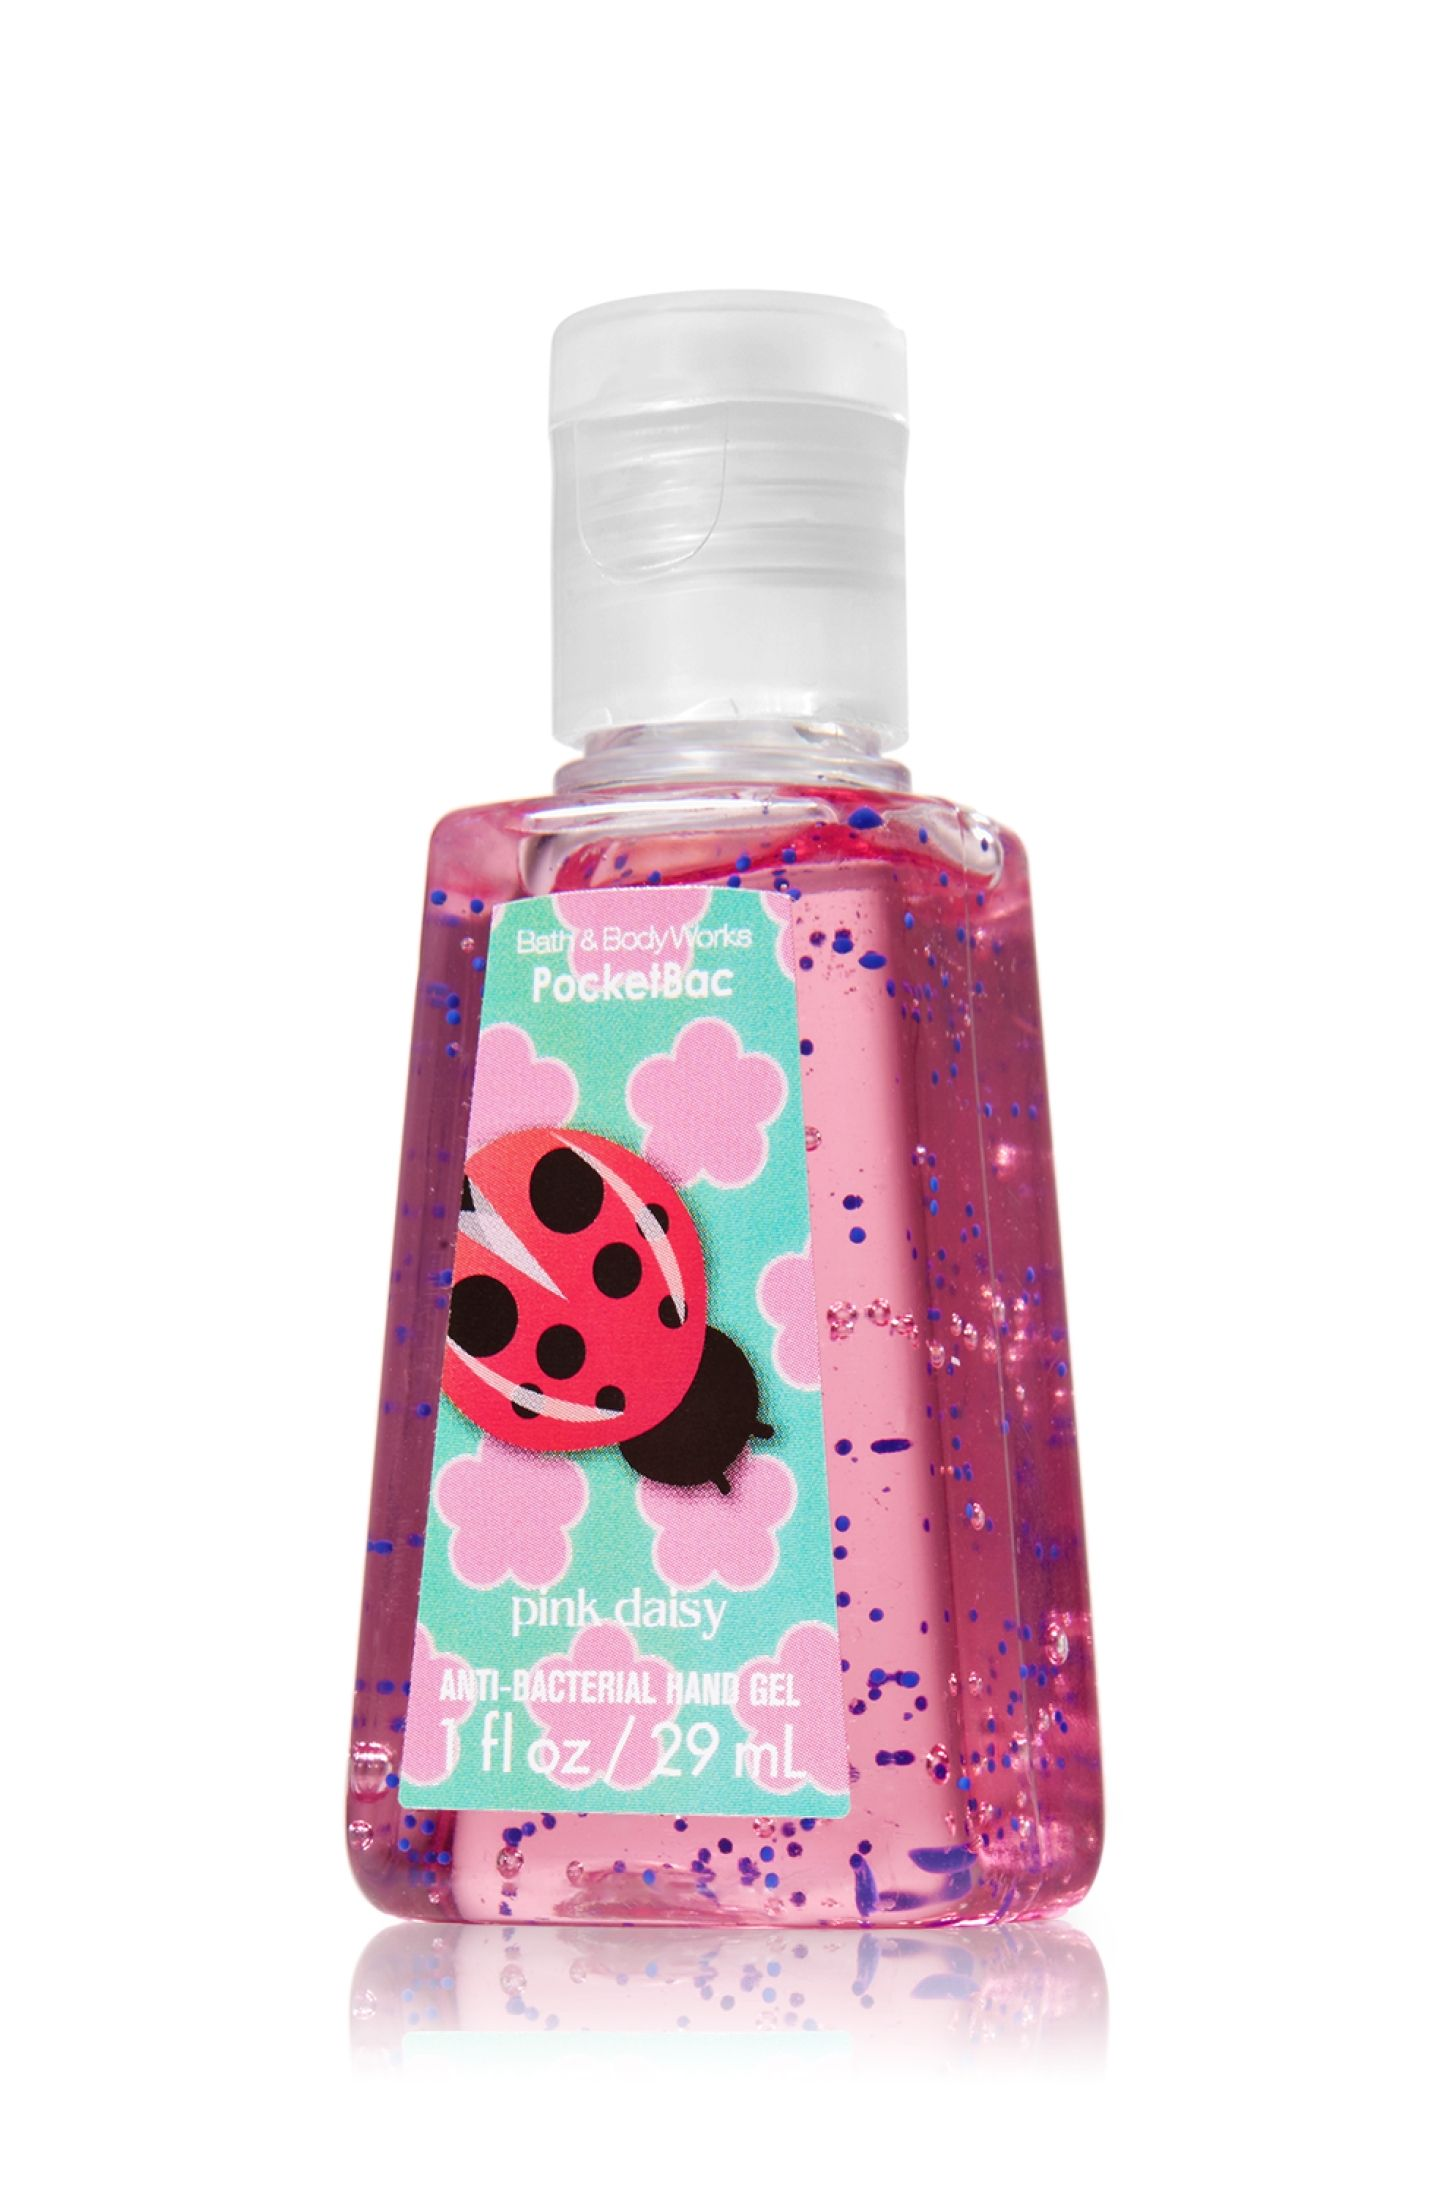 Pink Daisy Pocketbac Anti Bacterial Bath Body Works Bath N